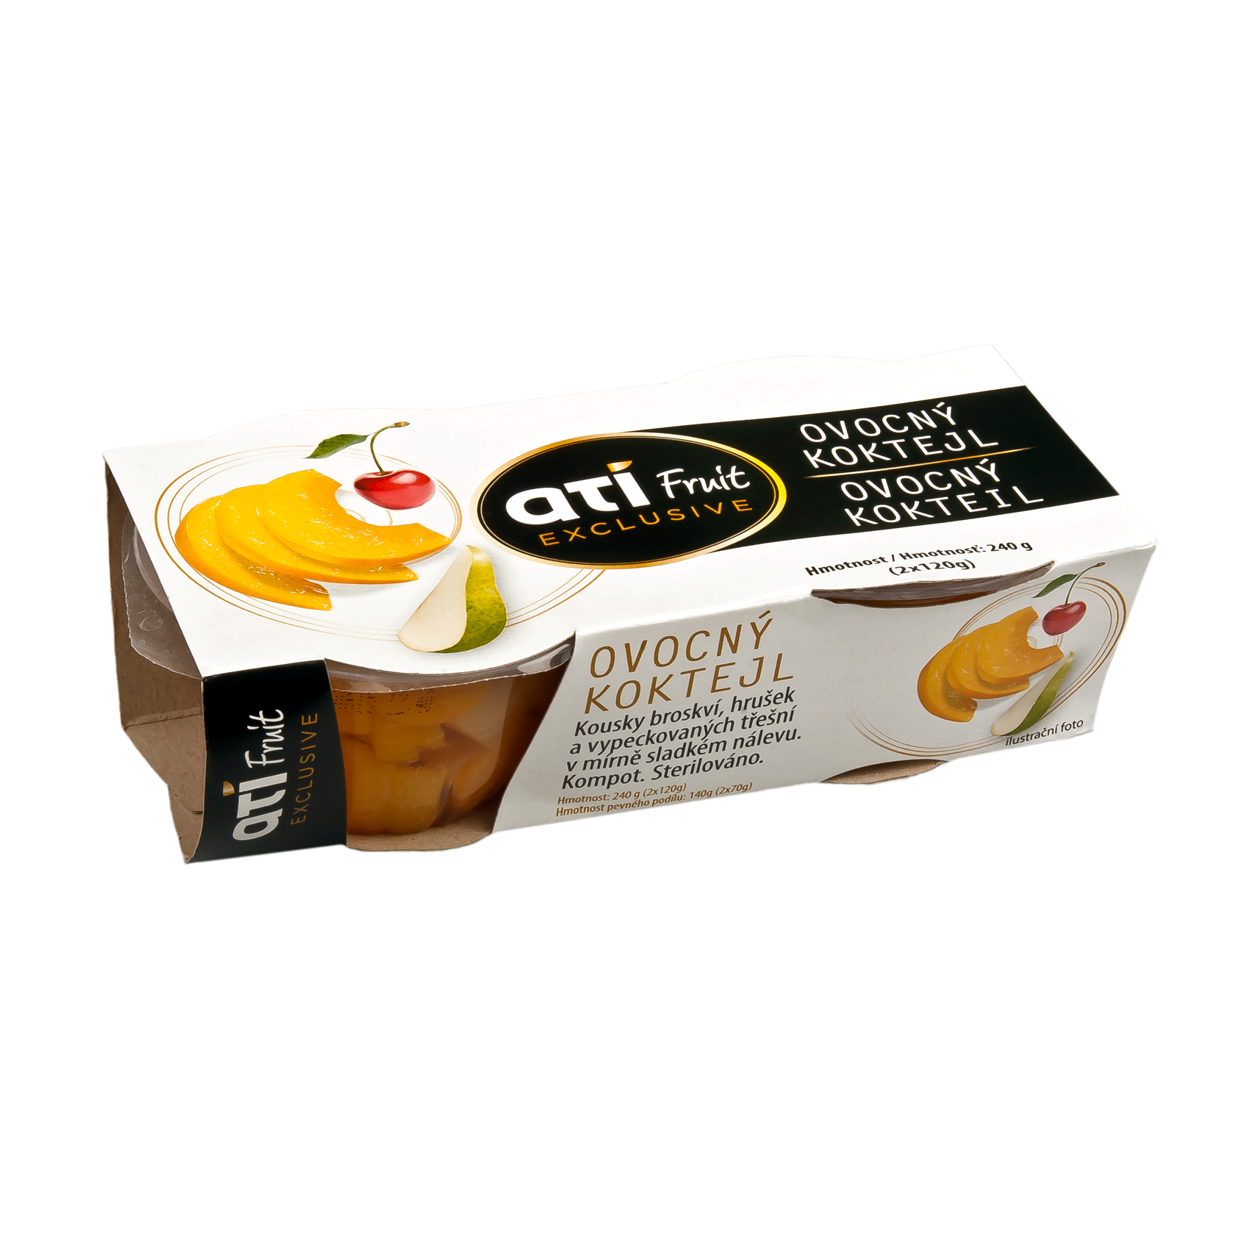 ATI Fruit Exclusive fruit cocktail 2 pack